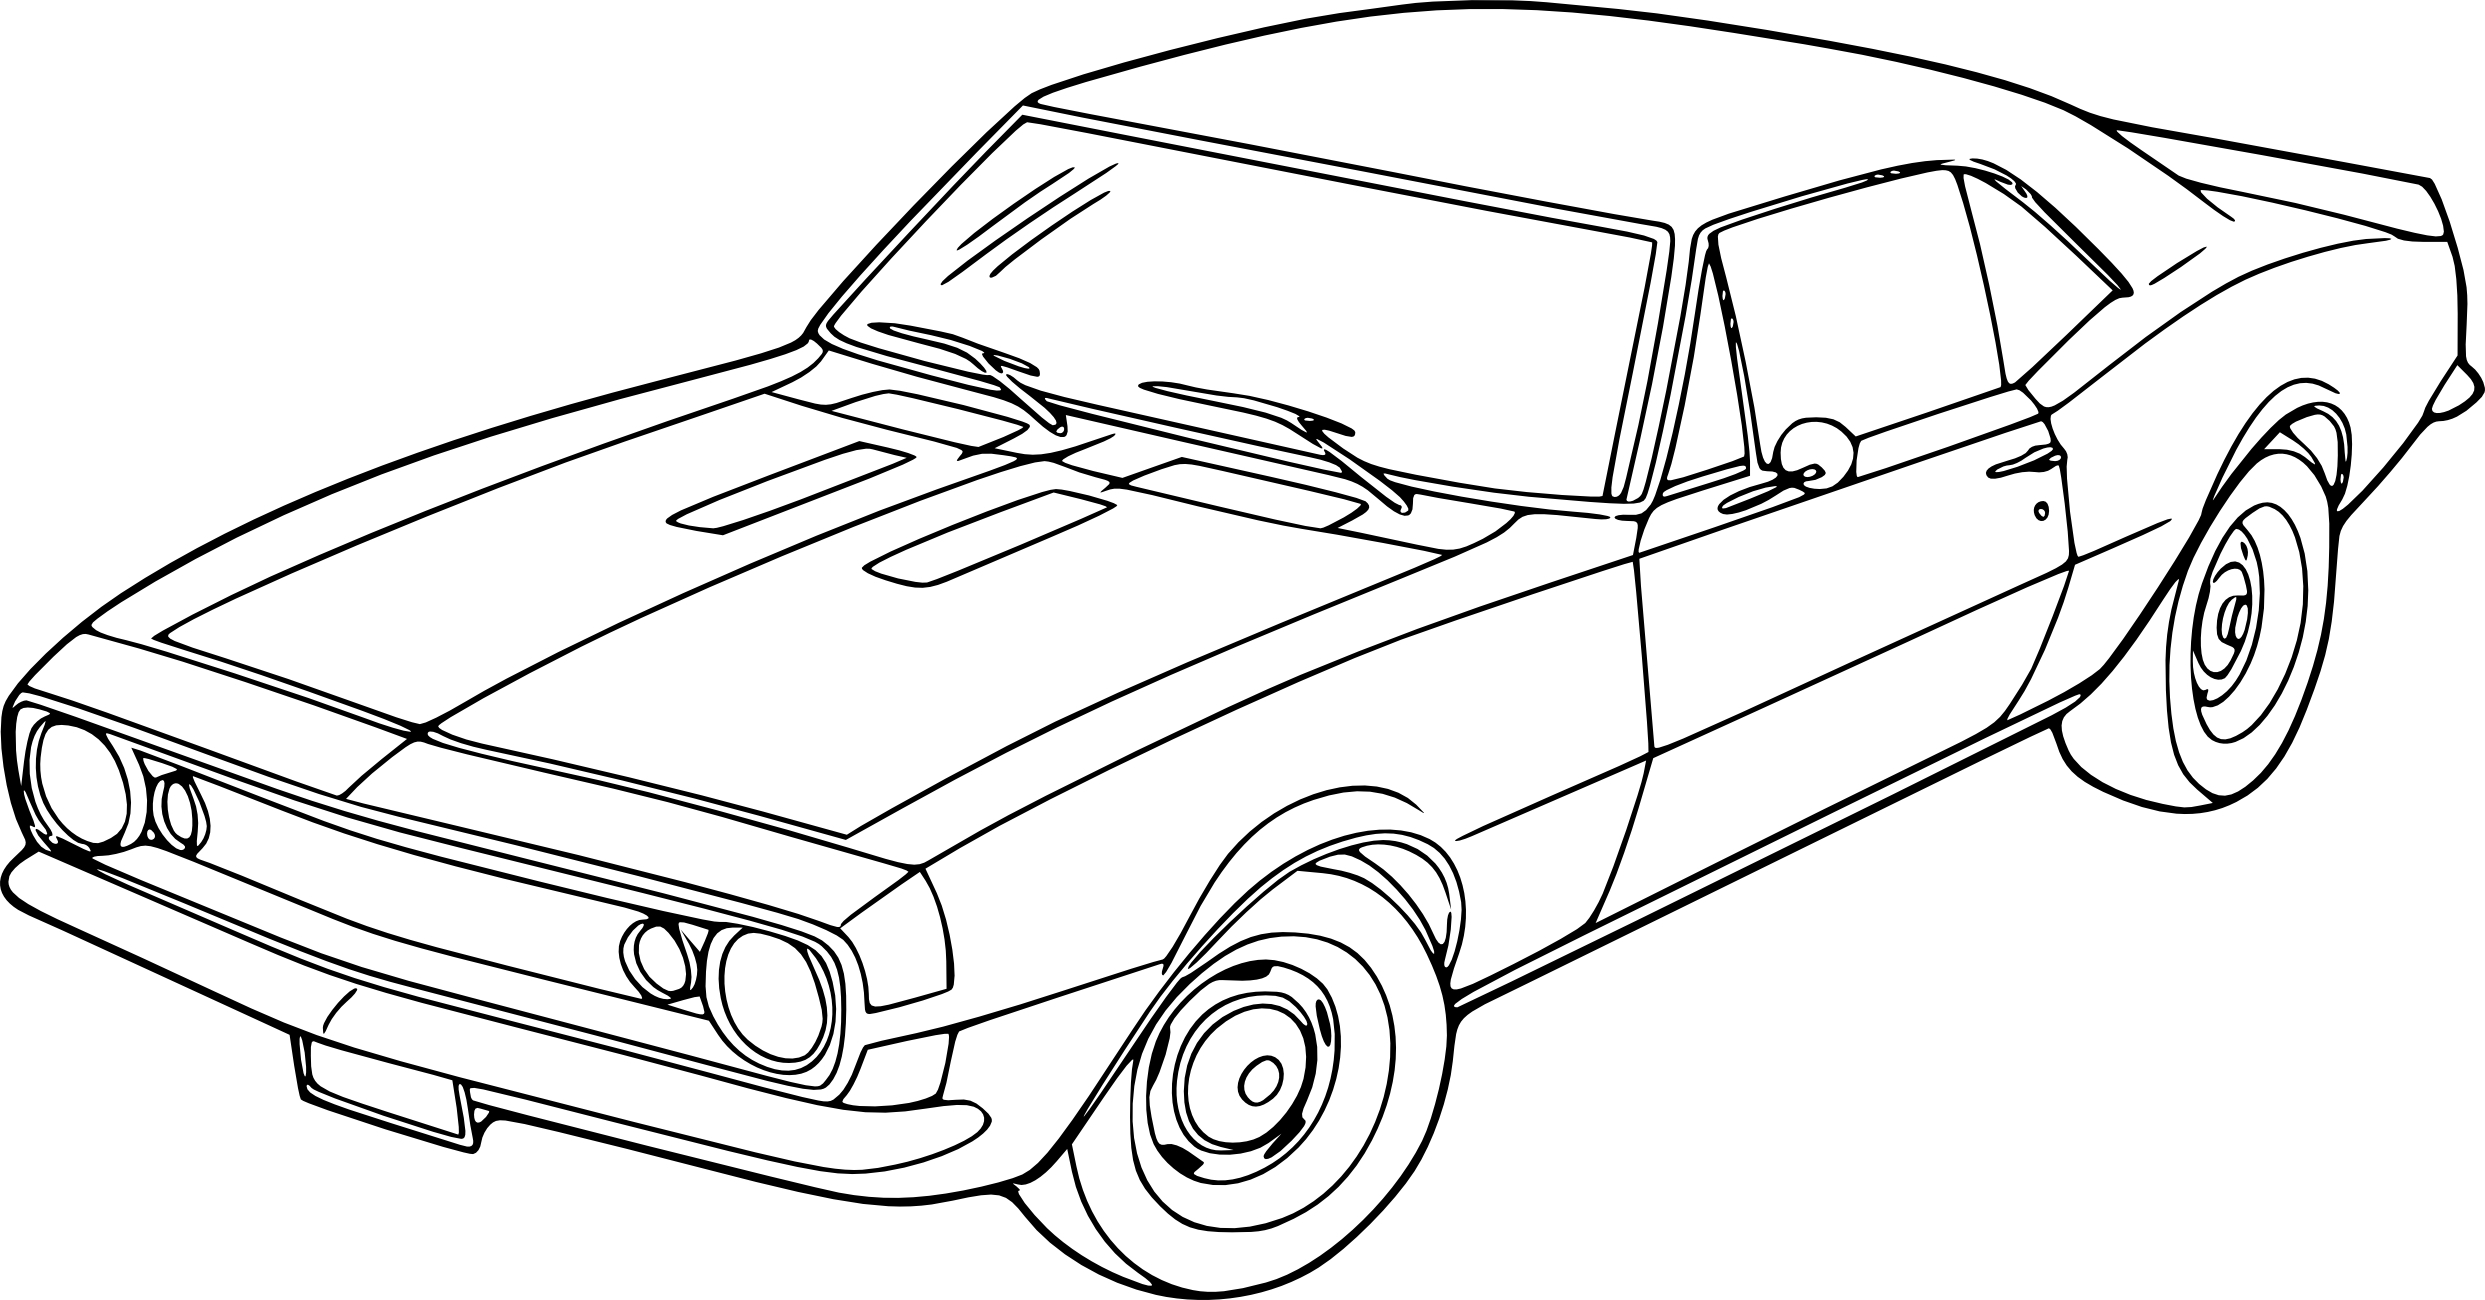 Fast And Furious Drawing At Getdrawings